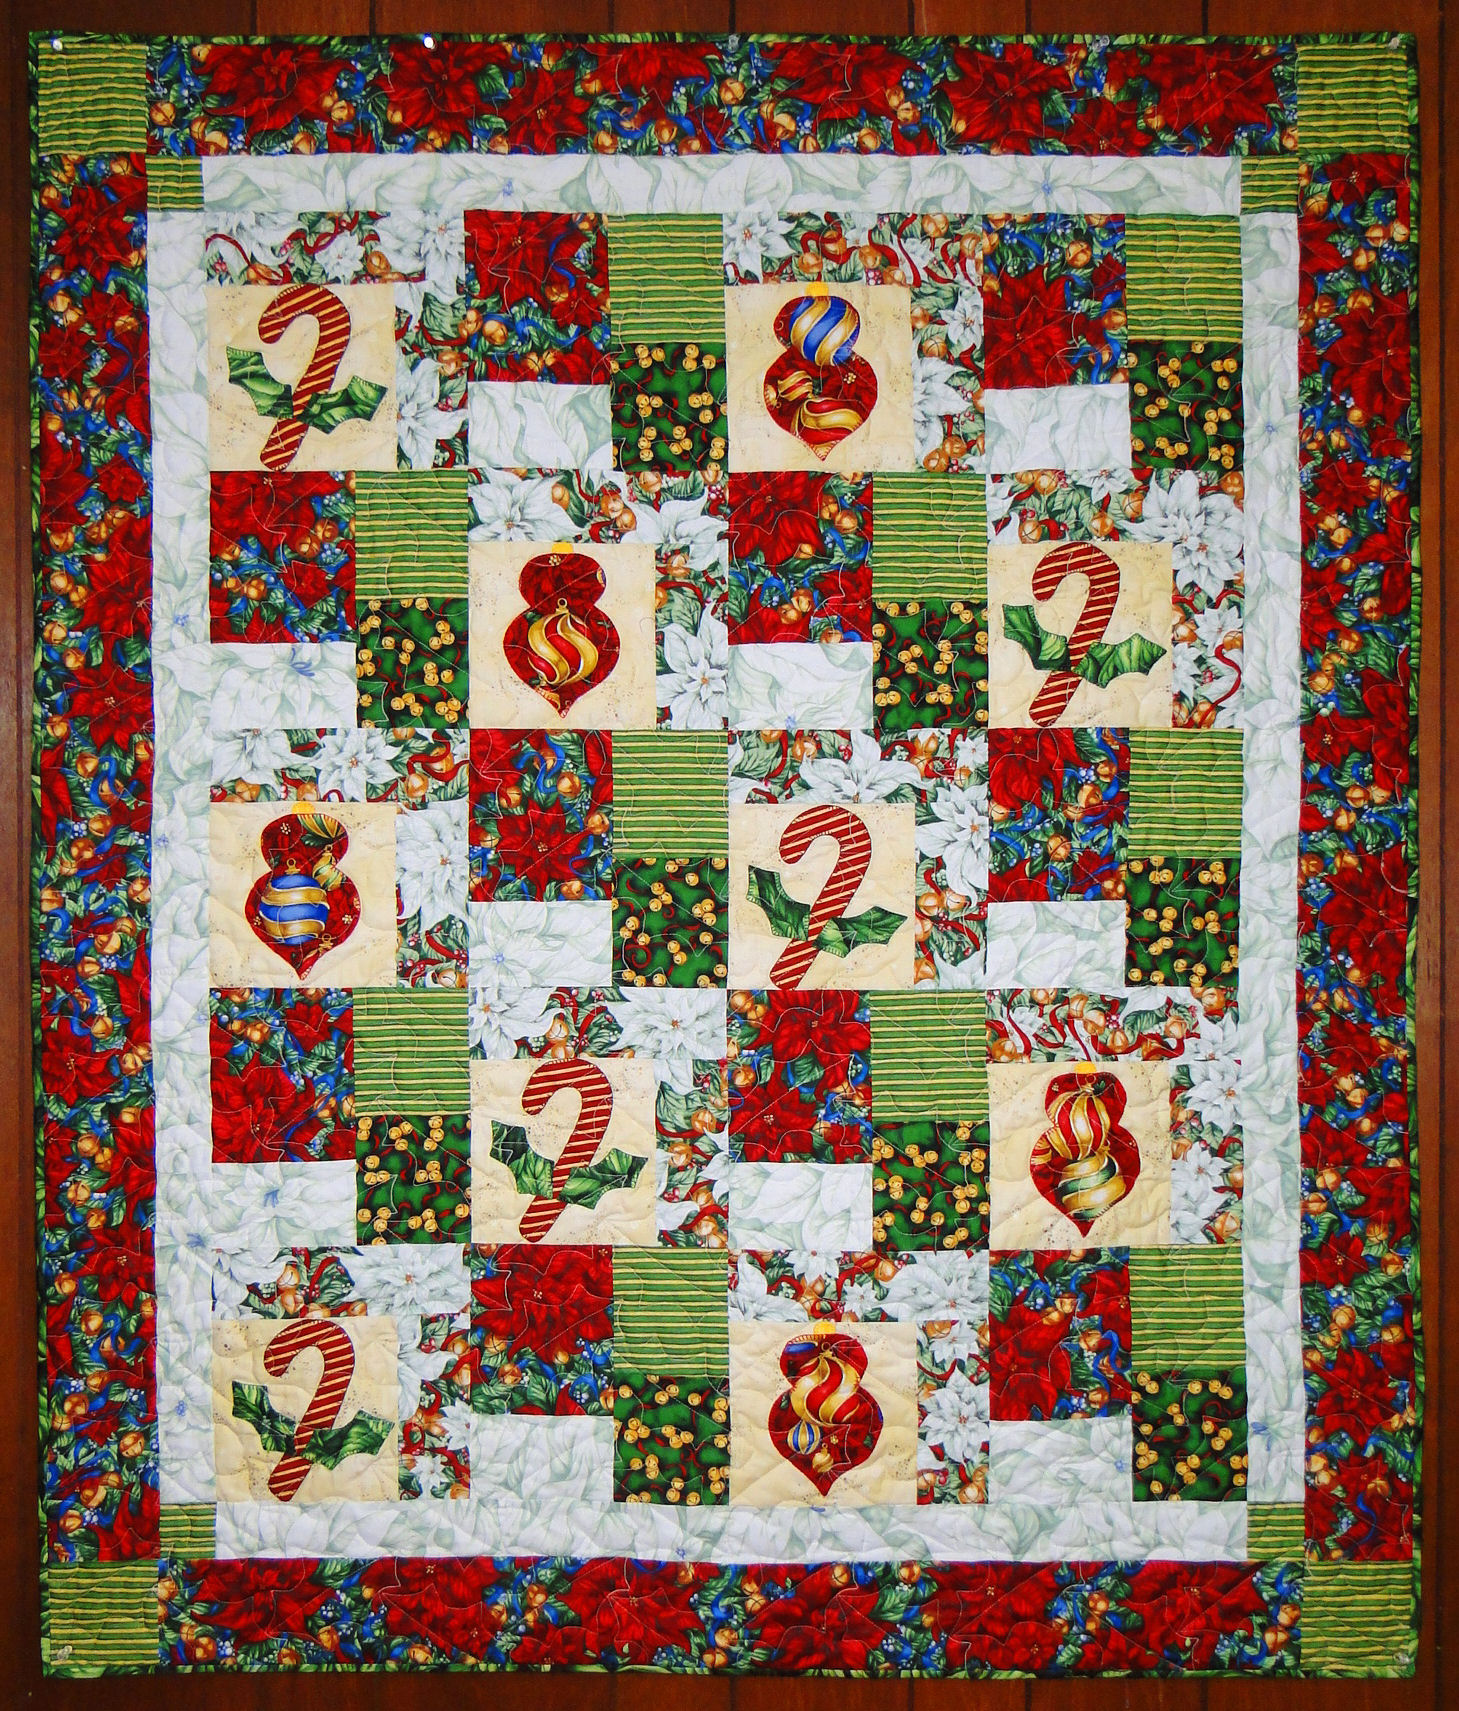 Cottage Quilt Designs : cottage quilt designs - Adamdwight.com